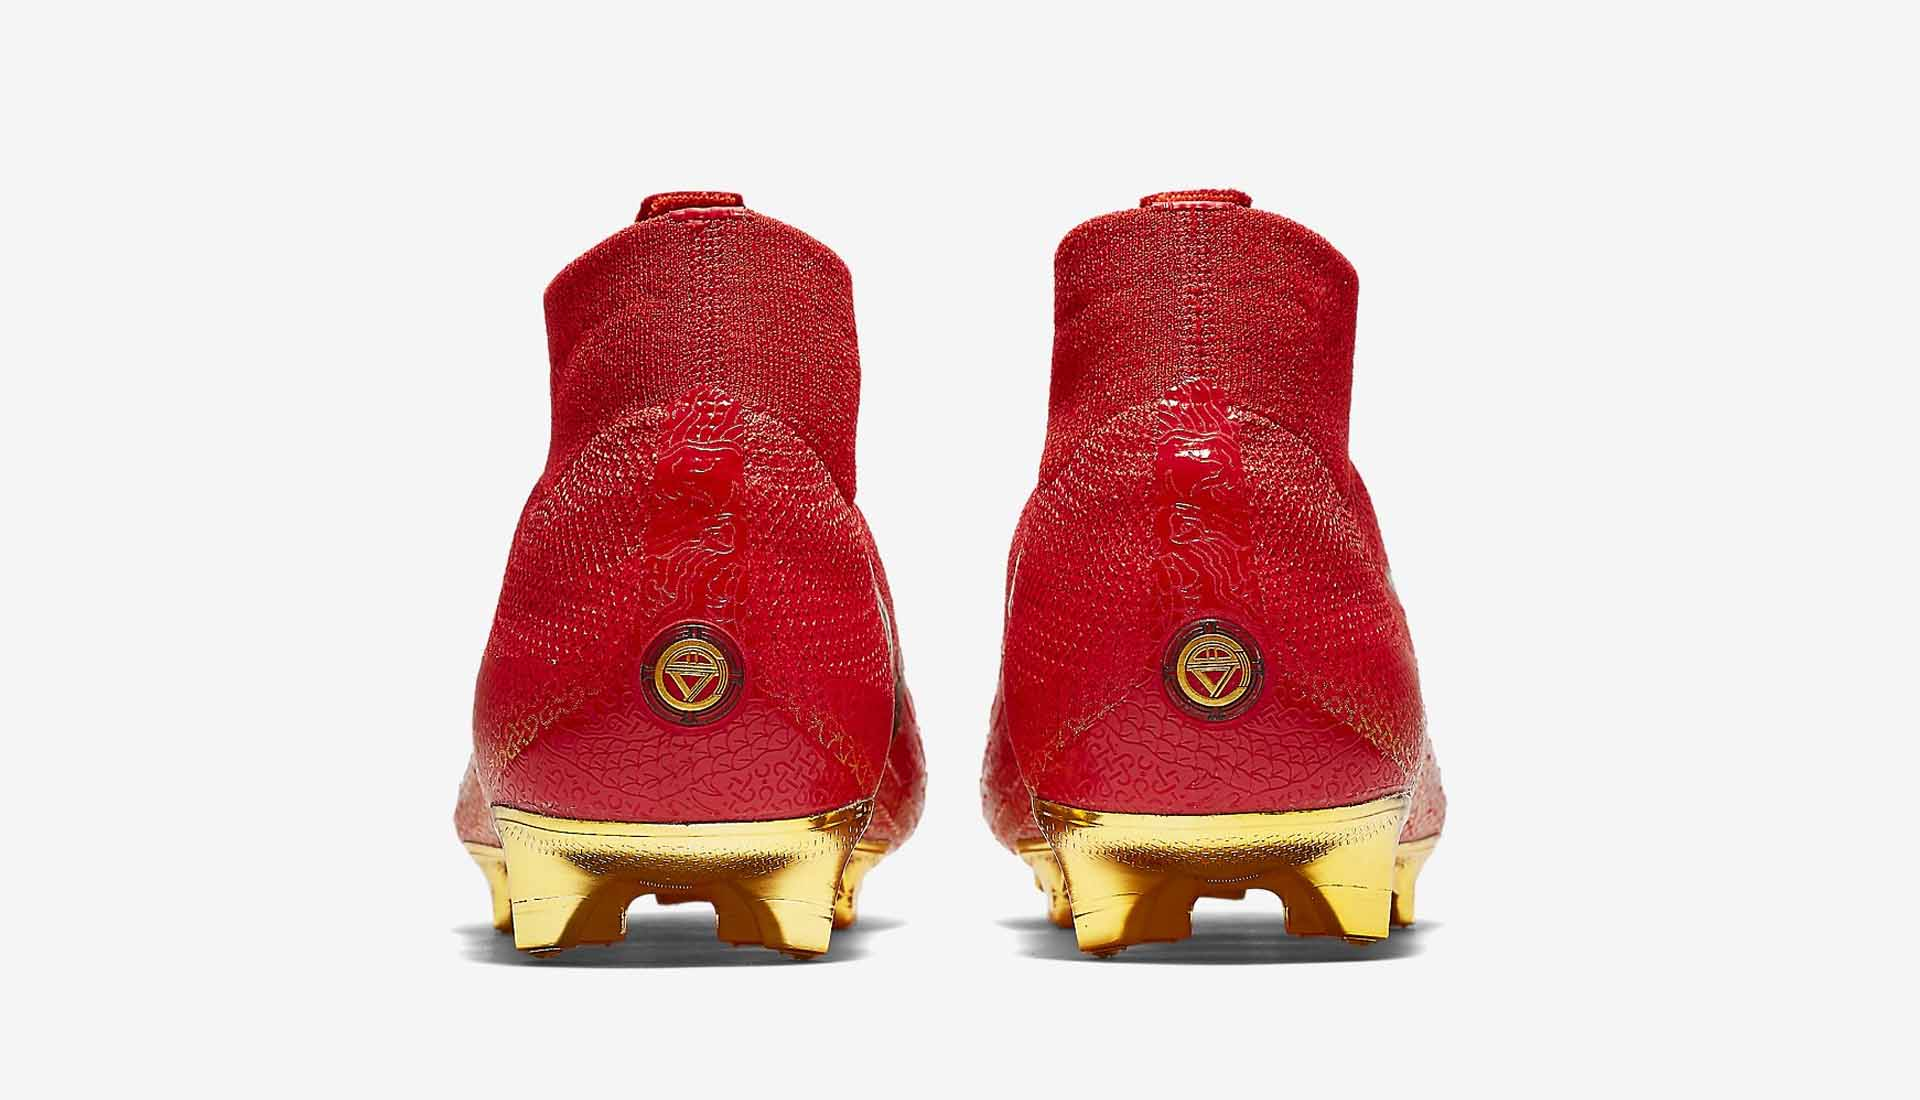 0650b85a25eb Nike Launch China Exclusive CR7 Collection - SoccerBible